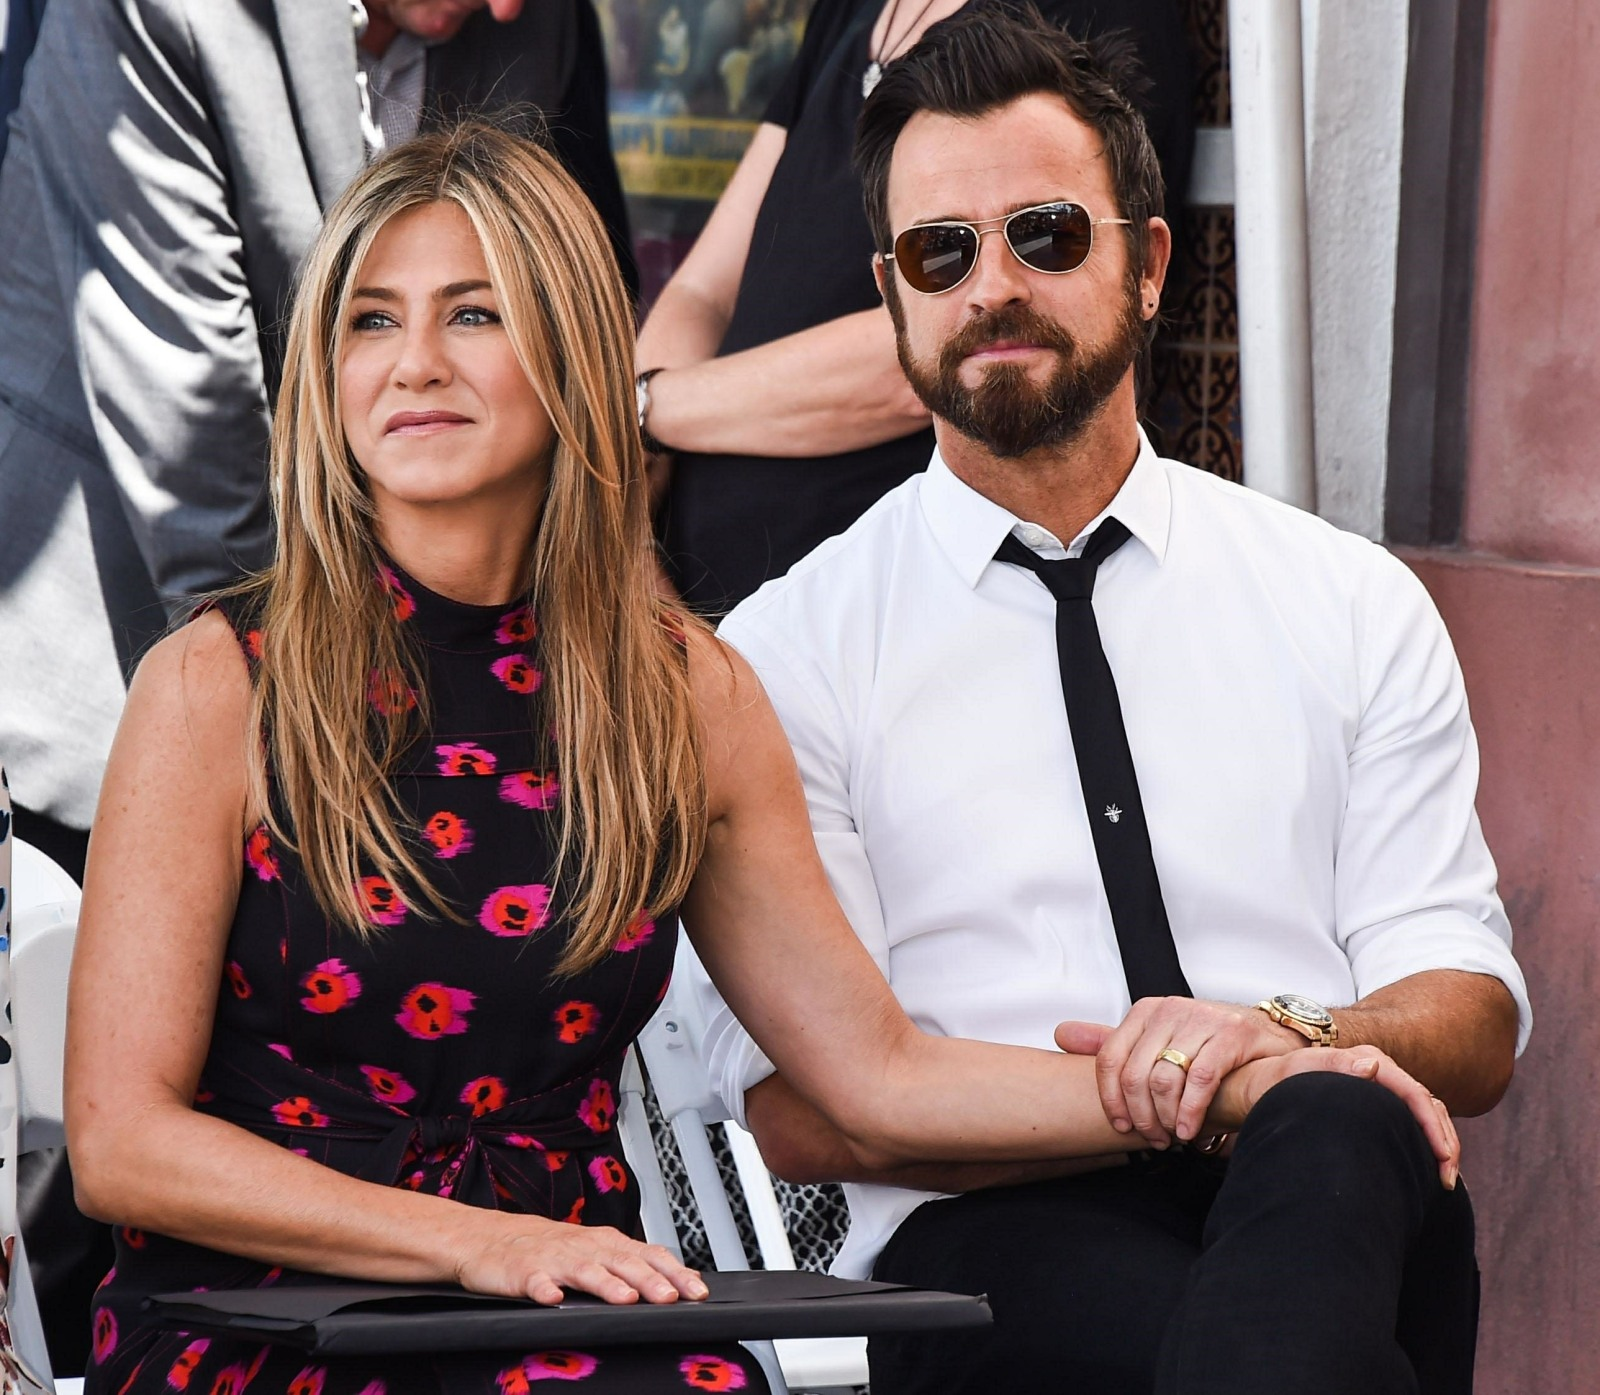 Jennifer Aniston and Justin Theroux attend Jason Bateman's Walk of Fame ceremony